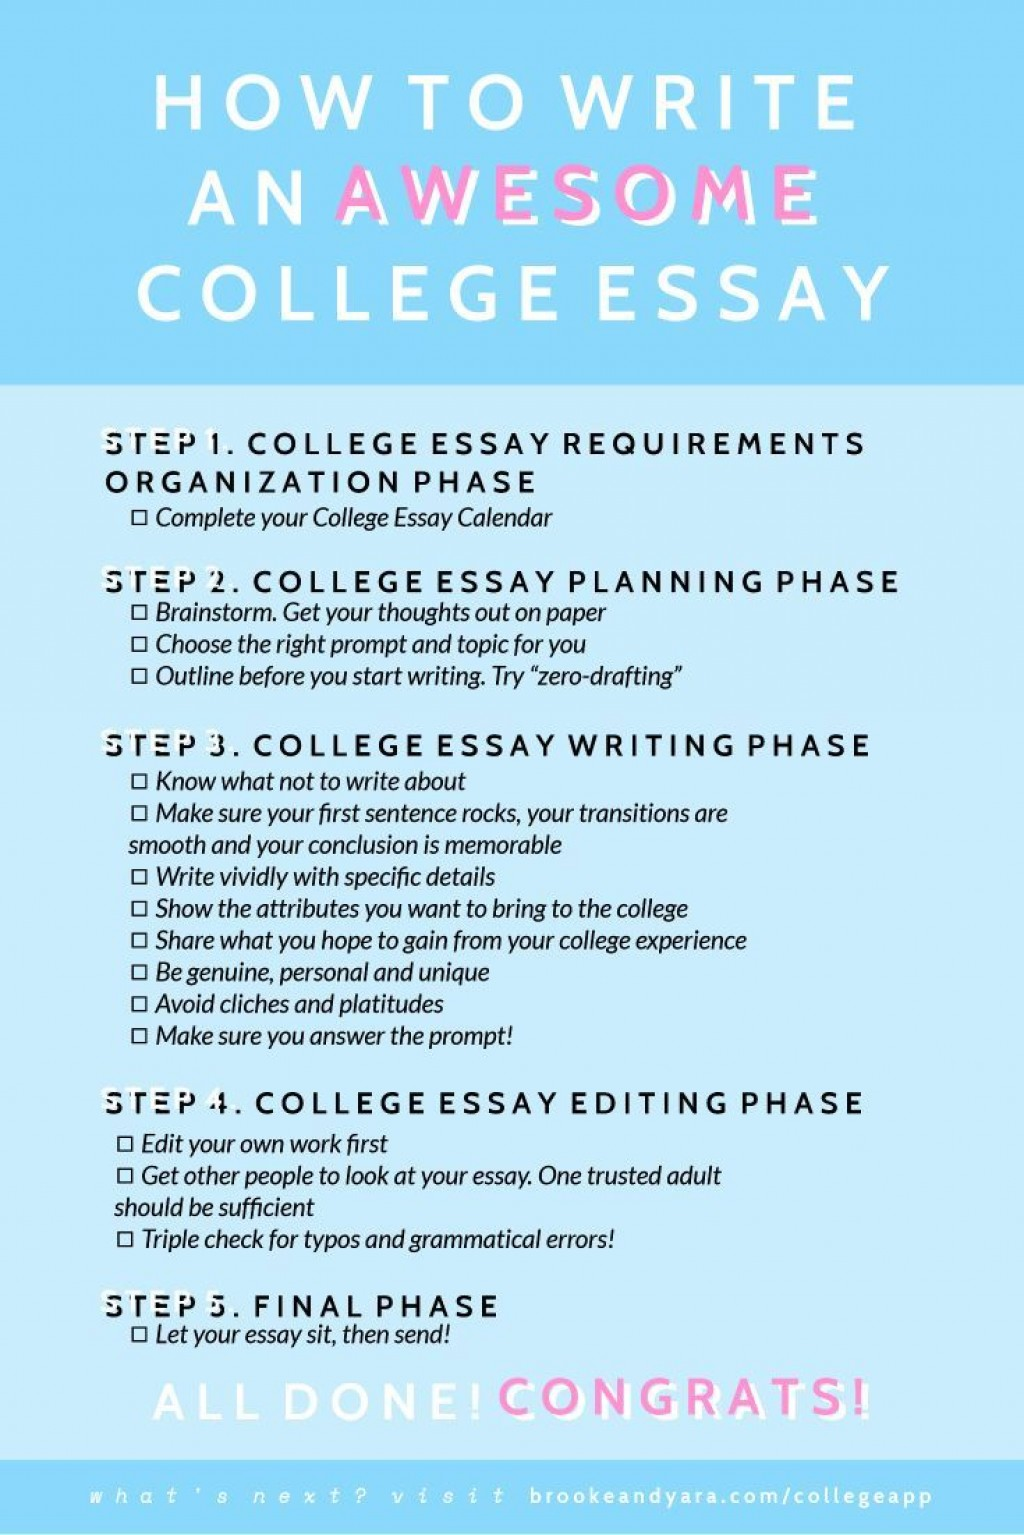 014 What Not To Write About In College Essay Frightening Things Your Admissions Large